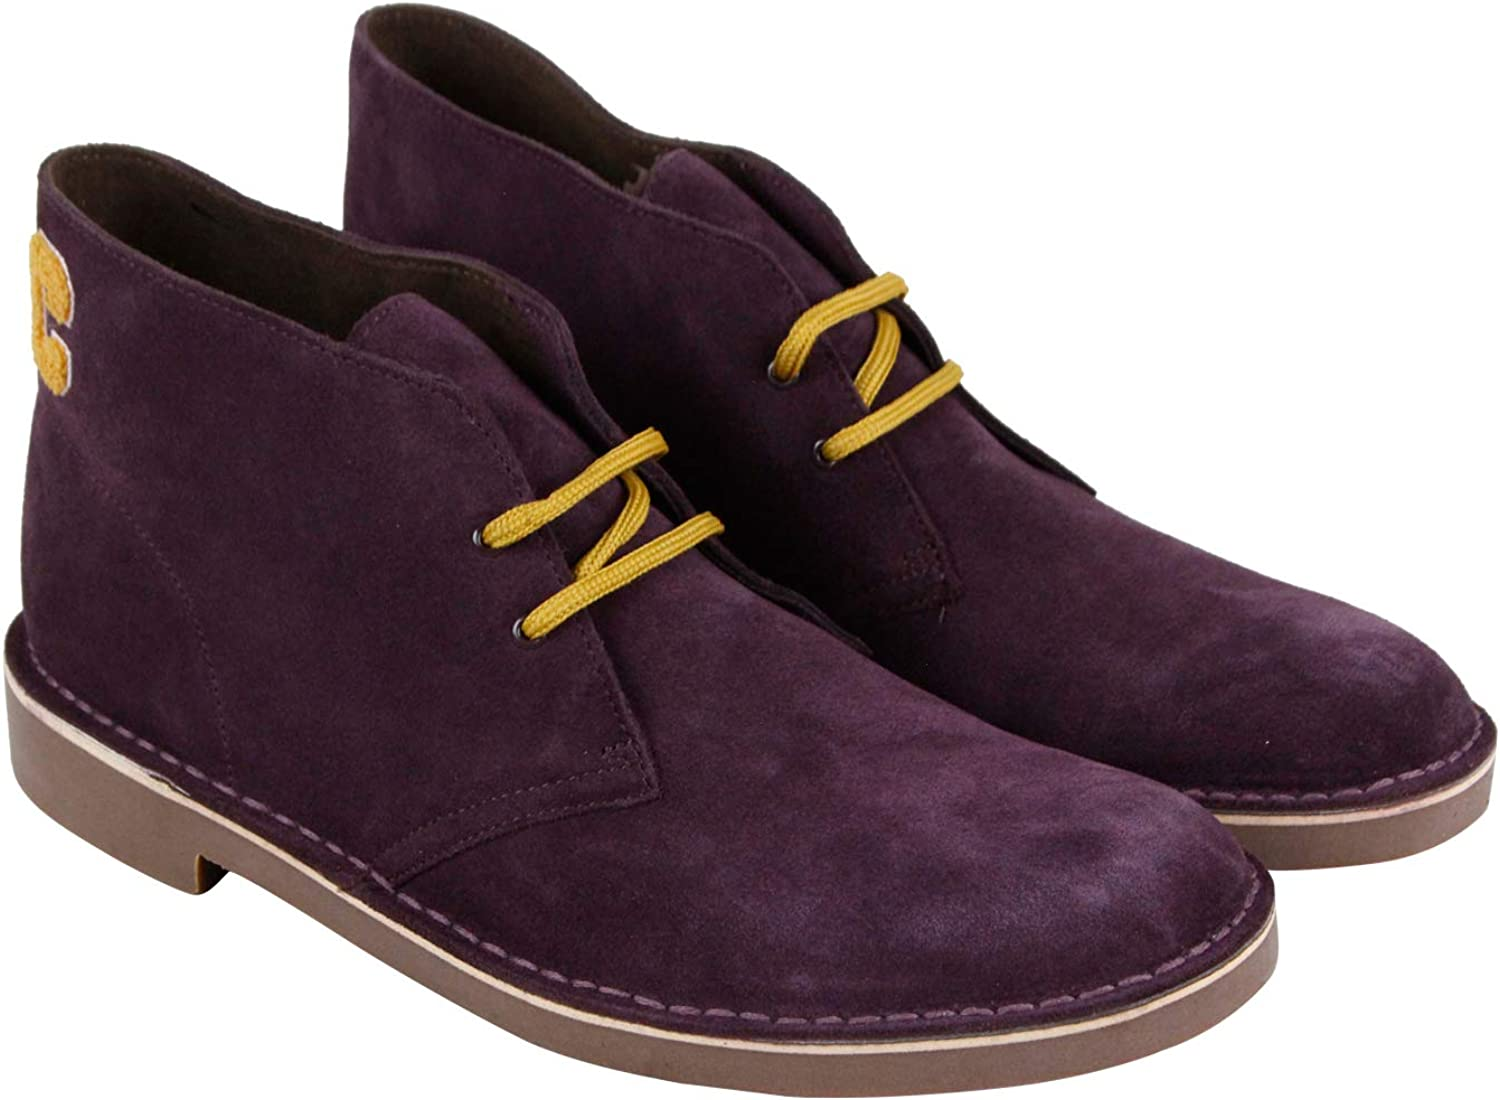 Clarks Bushacre Ca Mens Purple Suede Casual Dress Lace Up Chukkas shoes